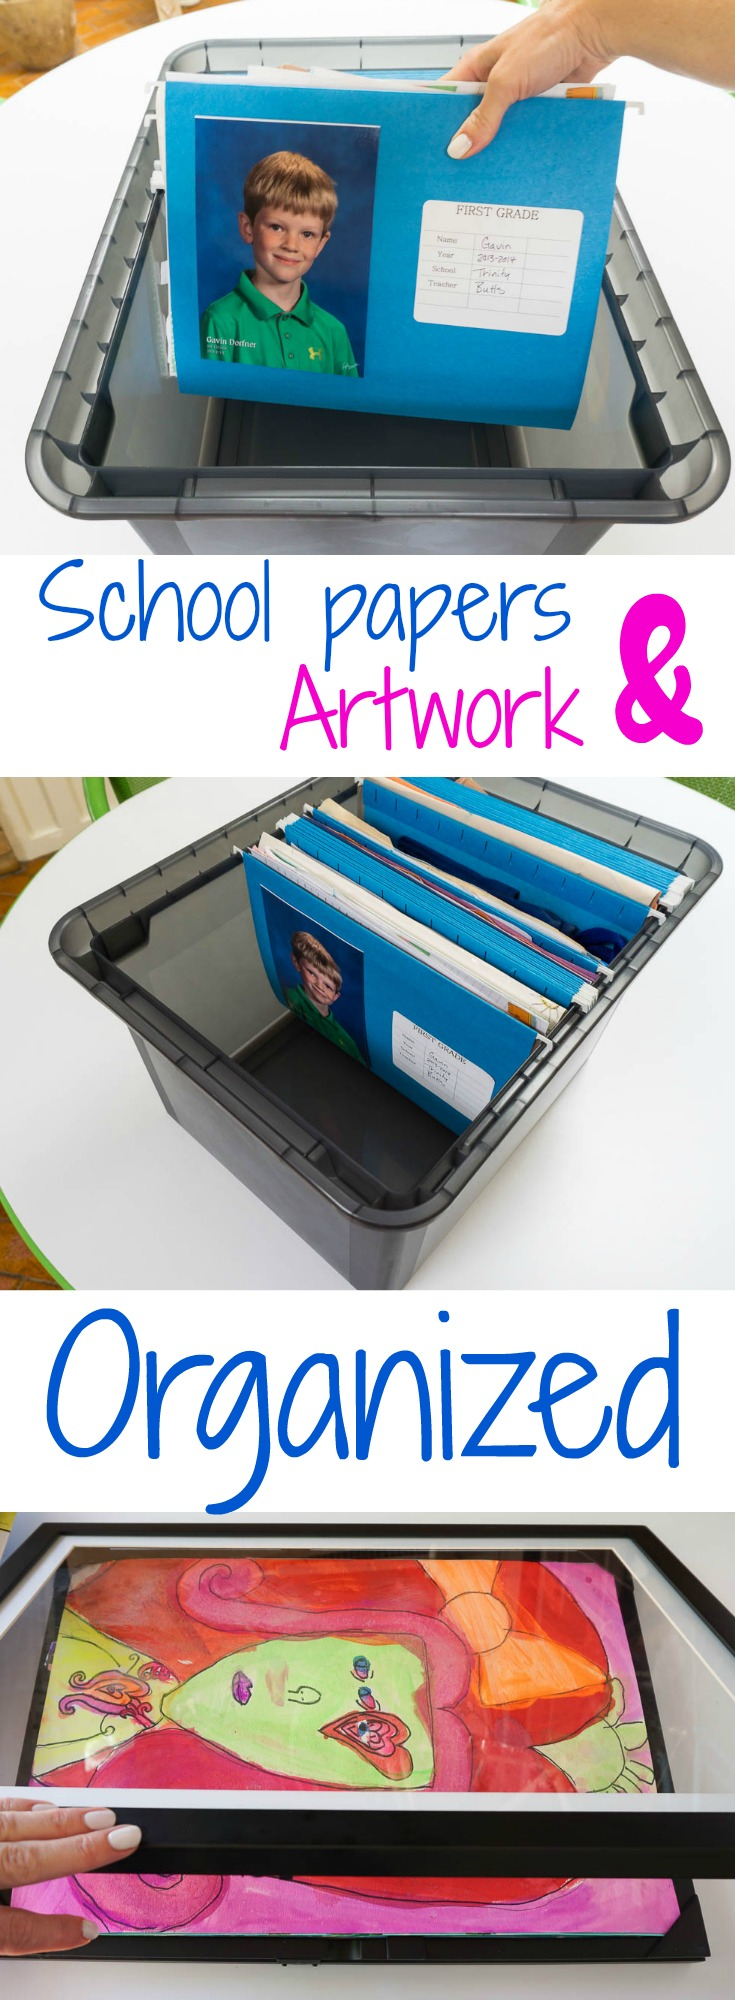 how to organize school papers and artwork kids